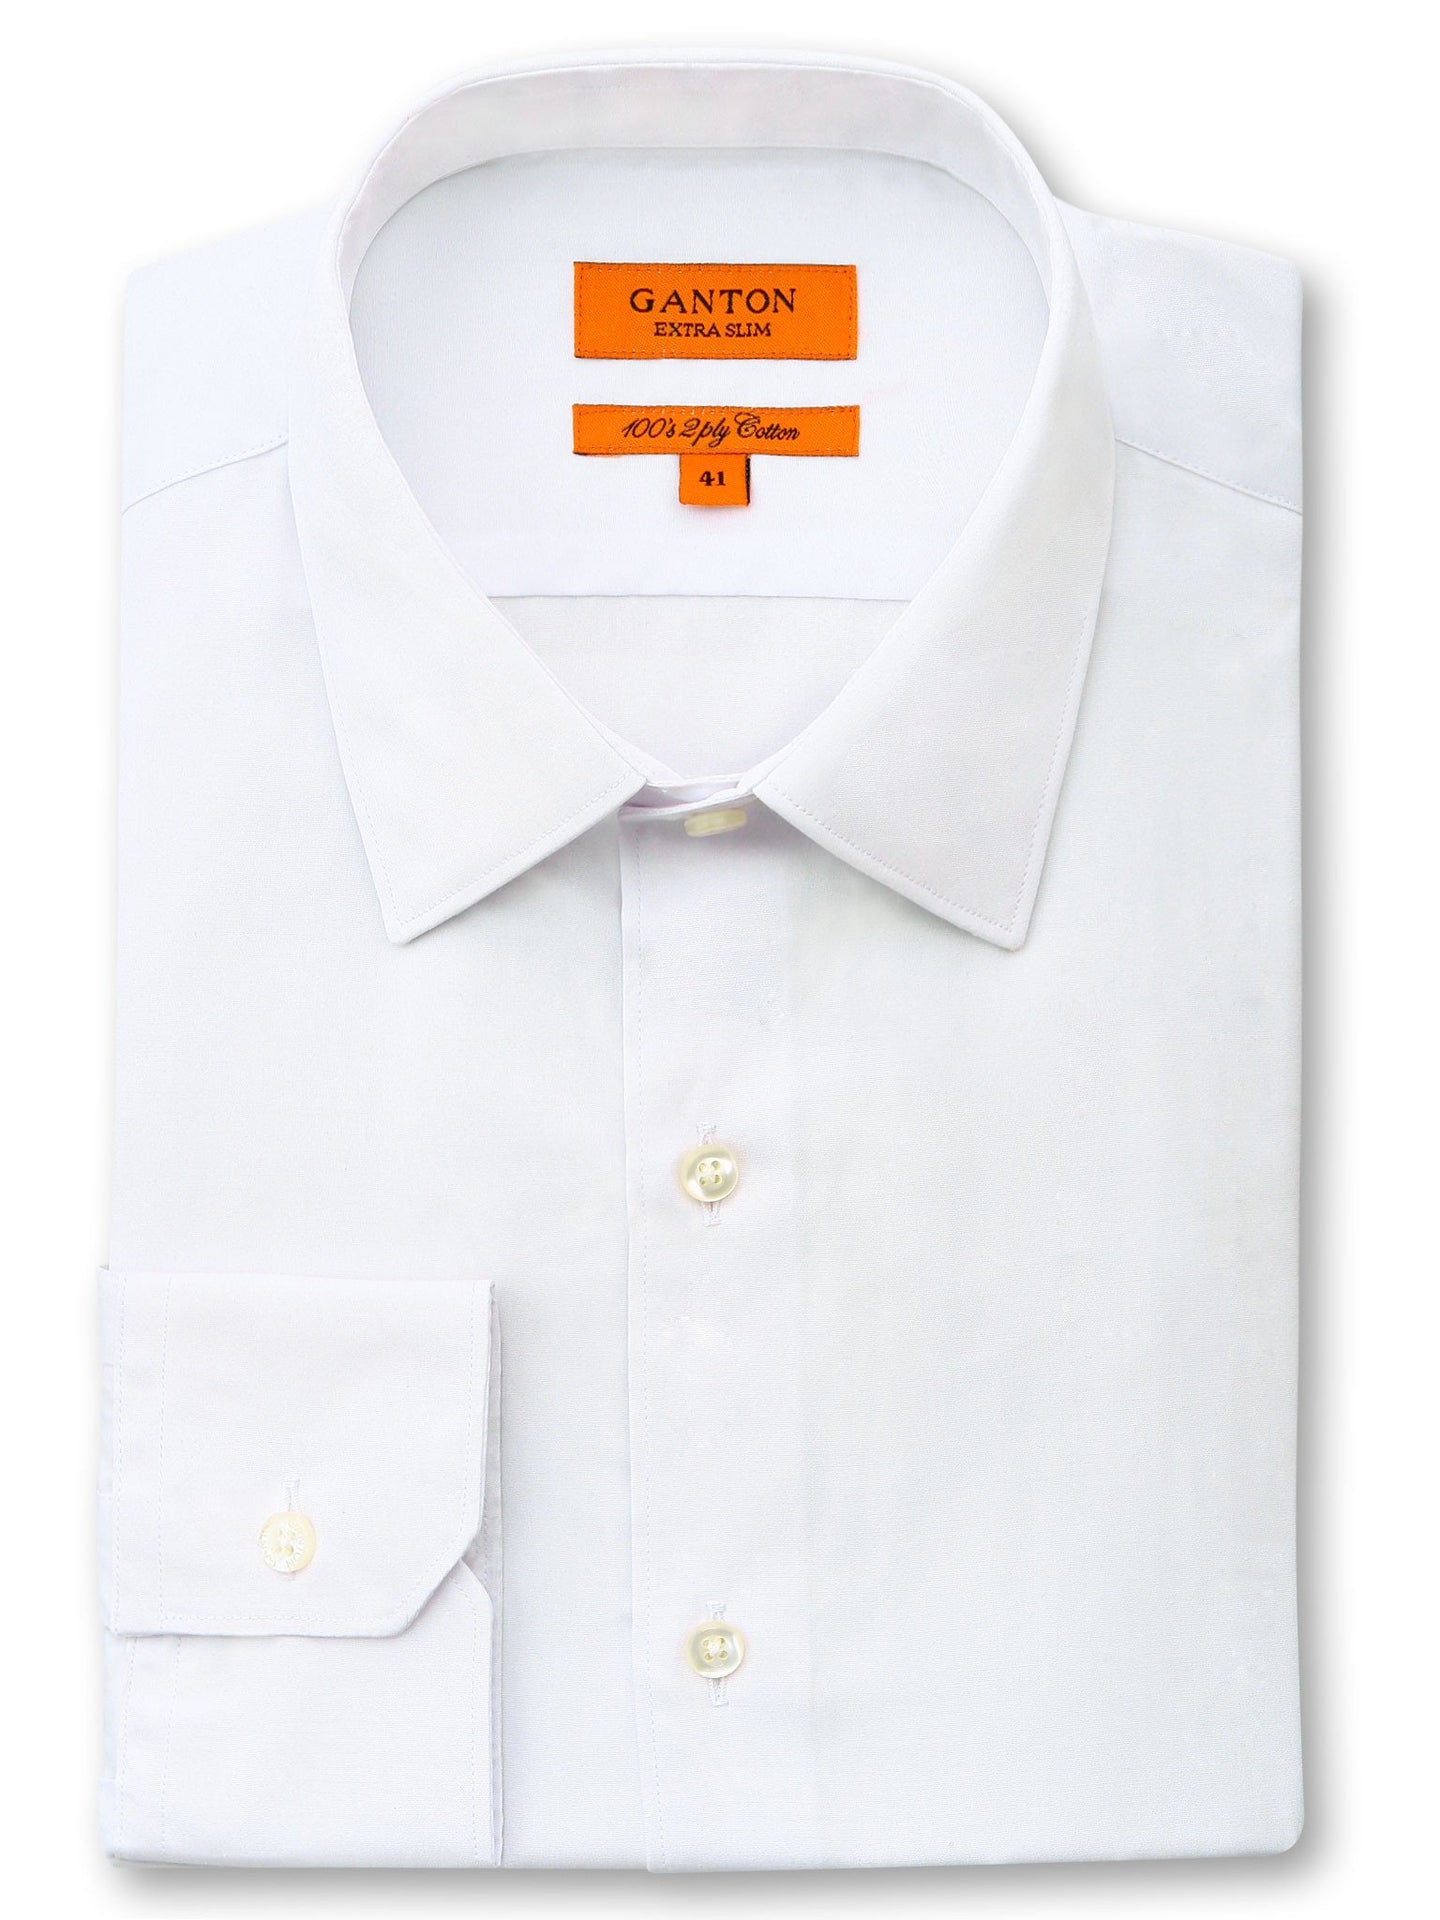 Ganton, Cotton Extra Slim - White